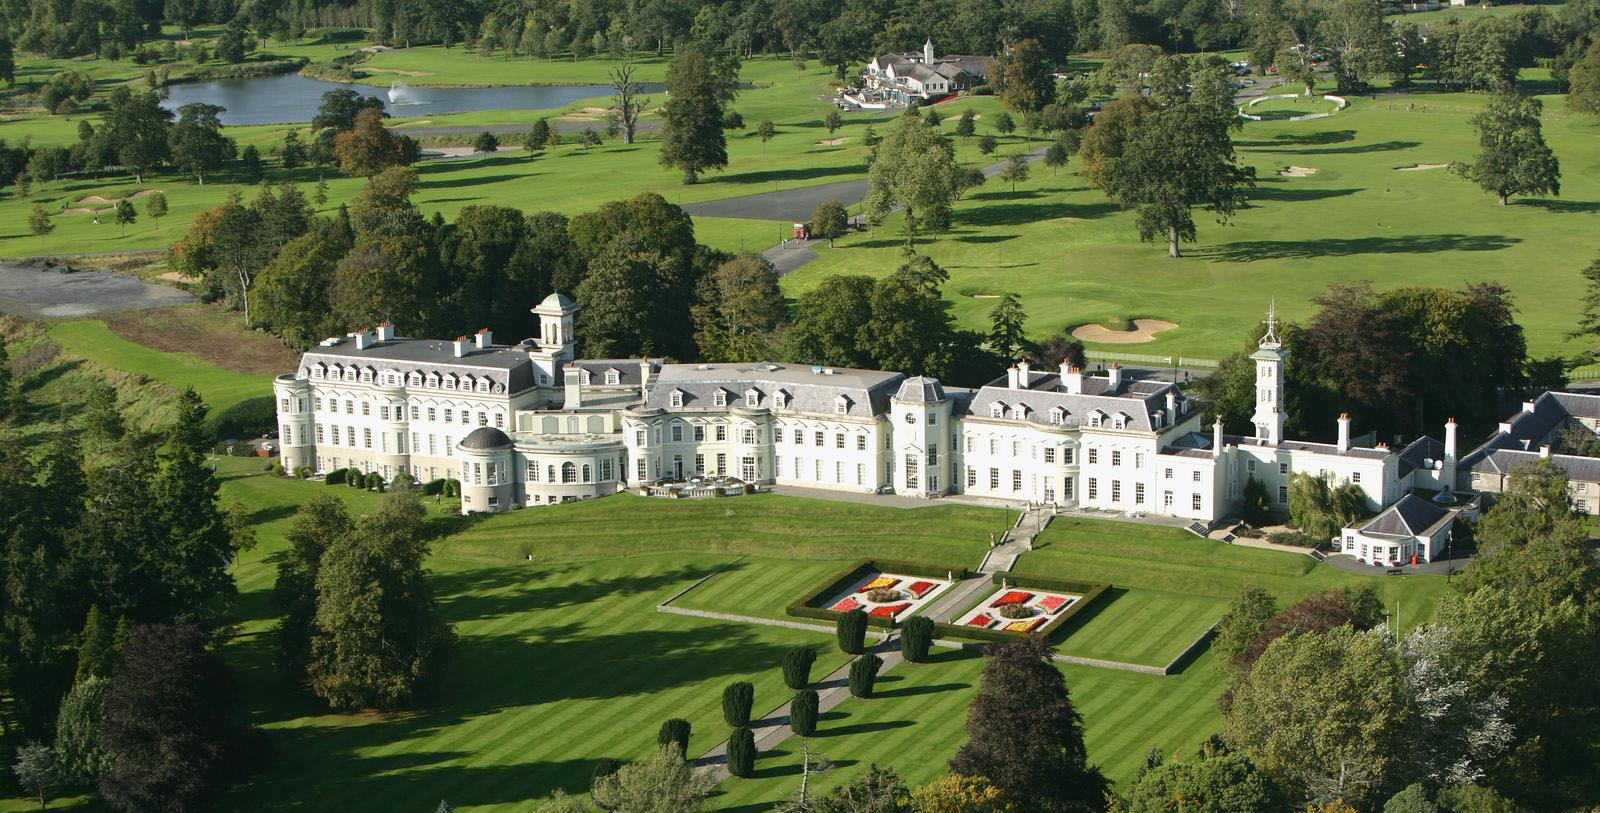 Image of Hotel Exterior The K Club, 550, Member of Historic Hotels Worldwide, in Straffan, County Kildare, Ireland, Overview